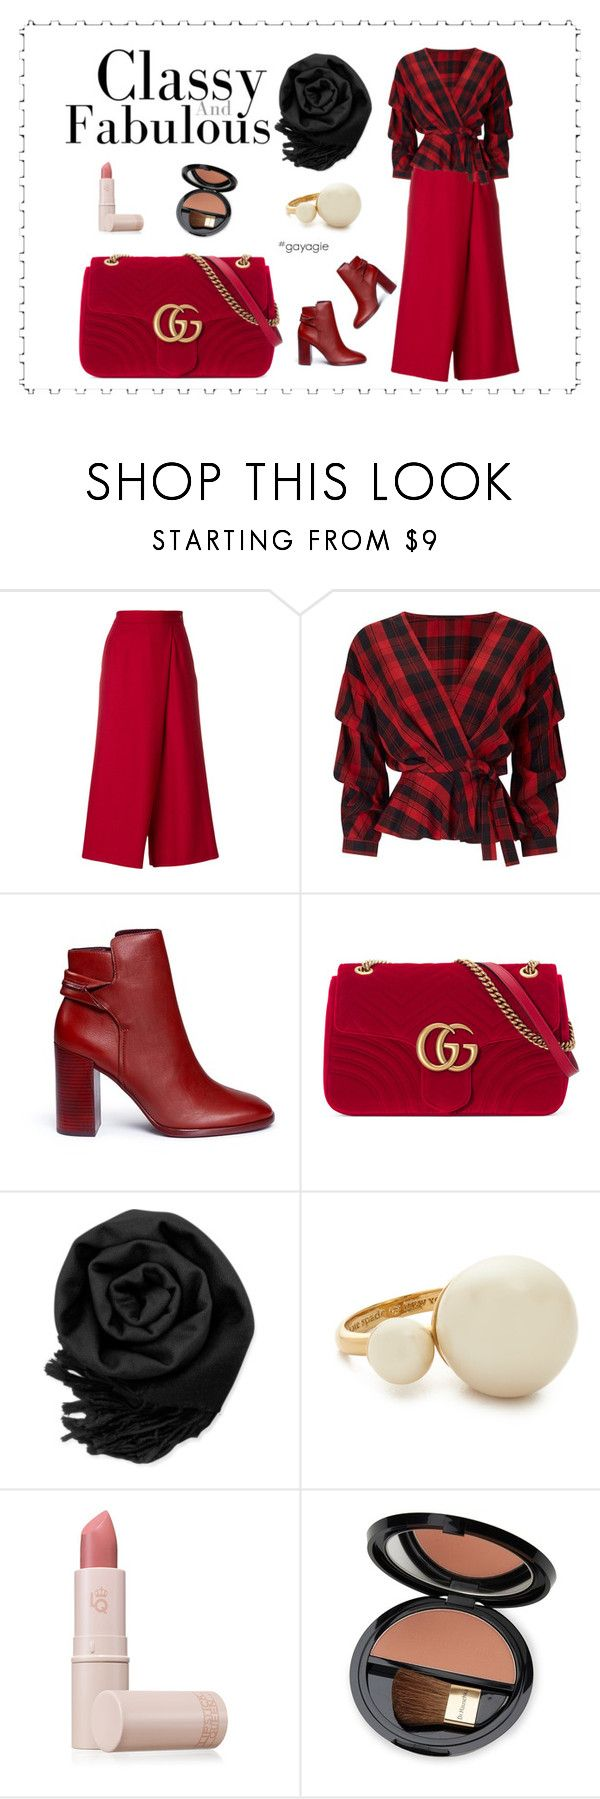 """""""Classy and Fabulous"""" by anggiswastika on Polyvore featuring PT01 Pantaloni Torino, Miss Selfridge, Mercedes Castillo, Gucci, Gearonic, Kate Spade, Lipstick Queen, Dr.Hauschka and gayagie"""